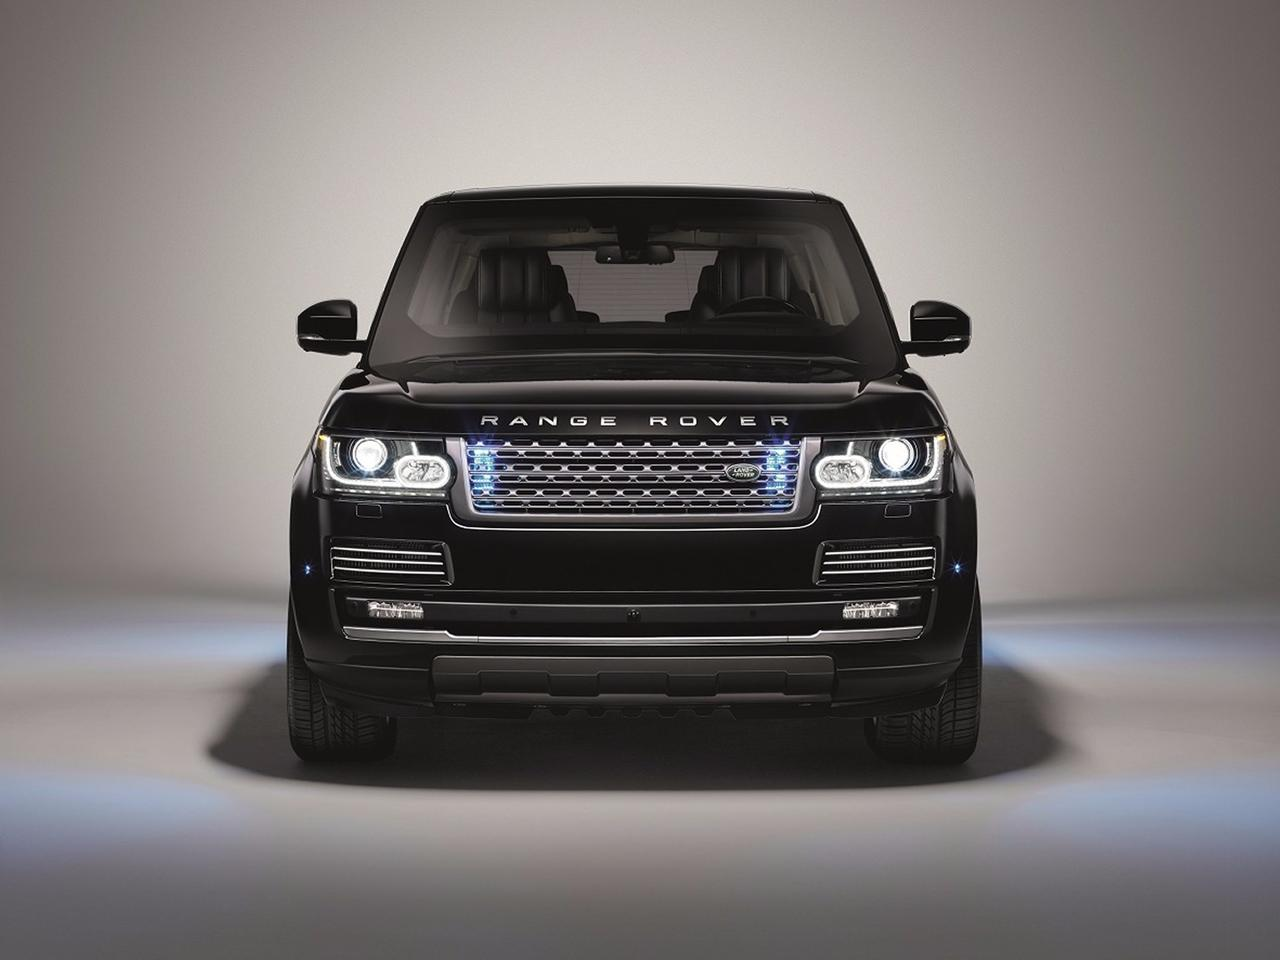 The Range Rover Sentinel can withstand grenade blasts